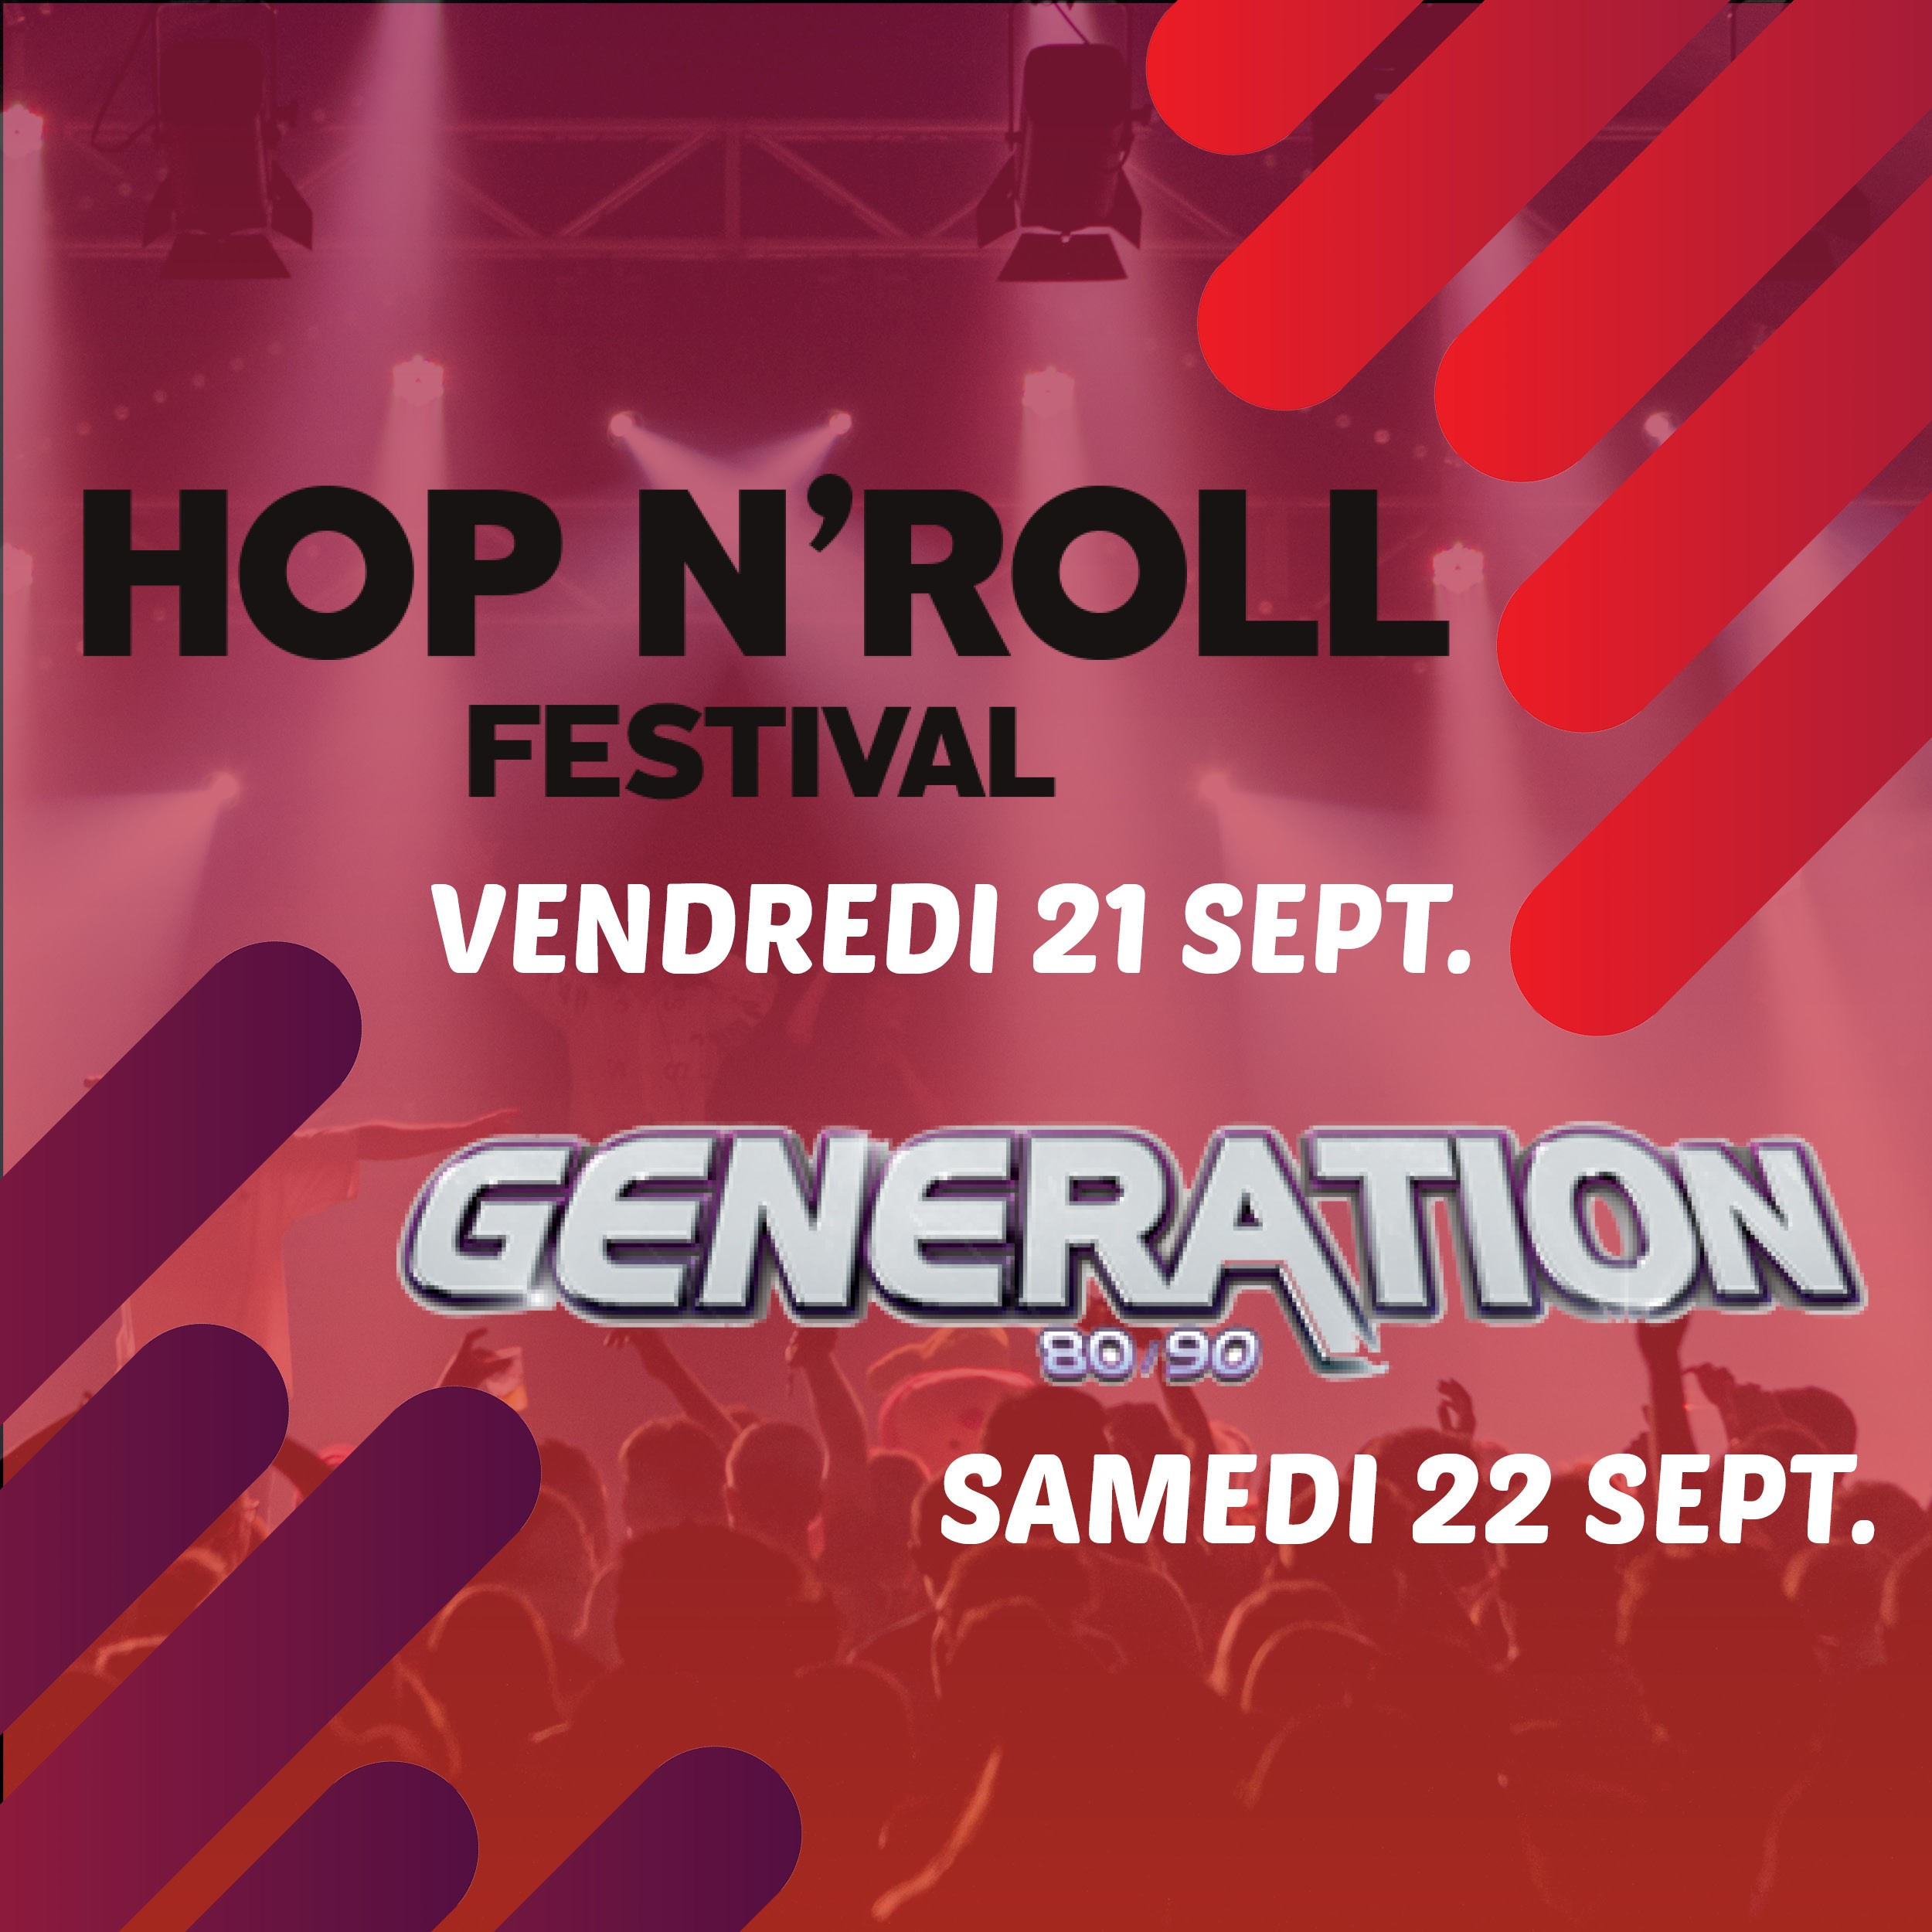 Hop n'roll Urban Edition 2018